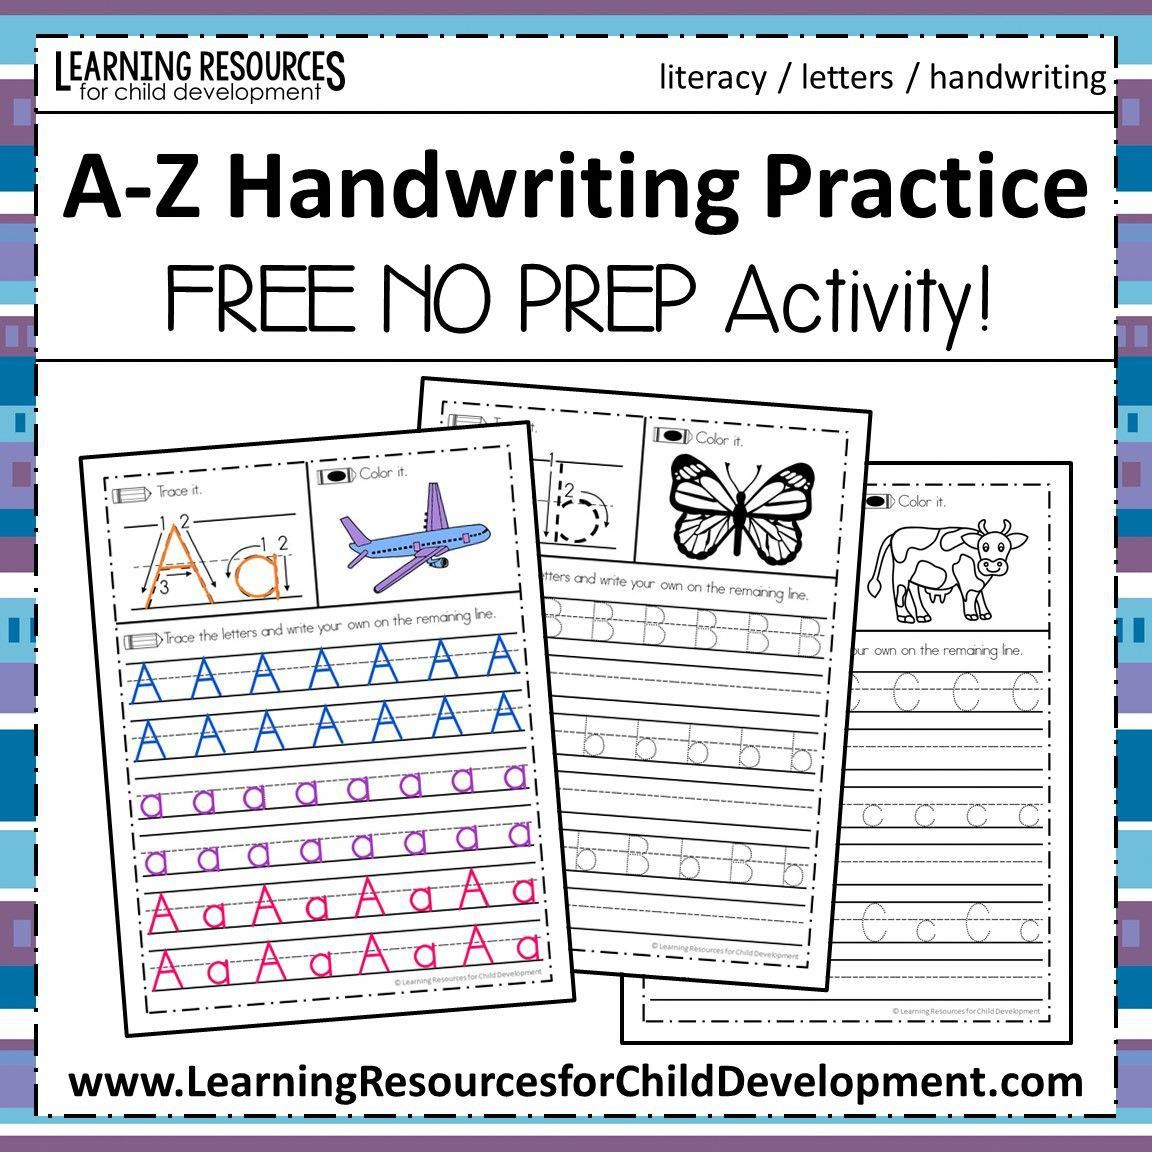 Handwriting Ideas Handwritingideas